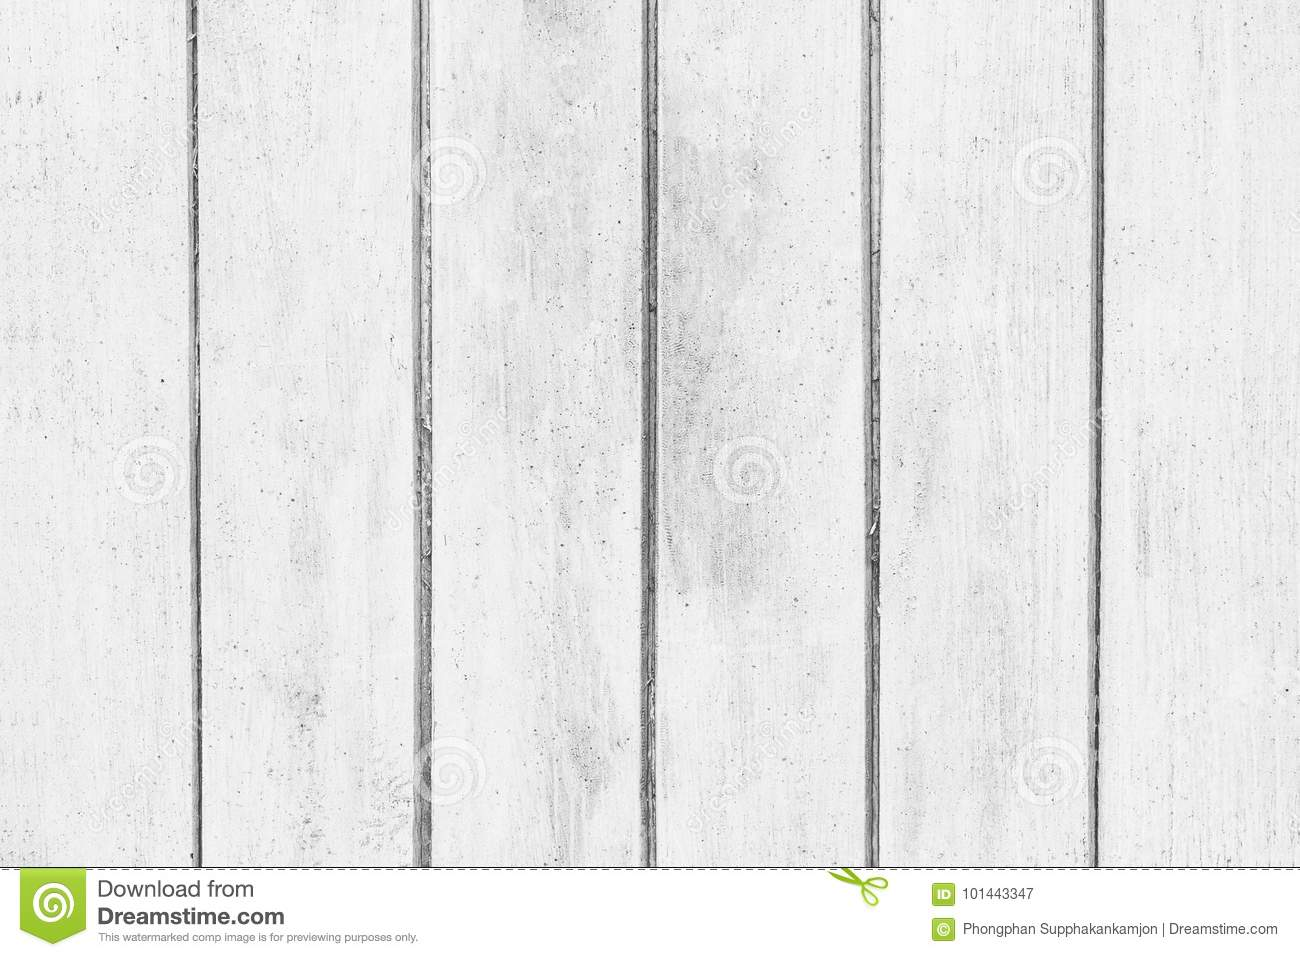 Abstract rustic surface white wood table texture background. Close up of rustic wall made of white wood table planks texture.